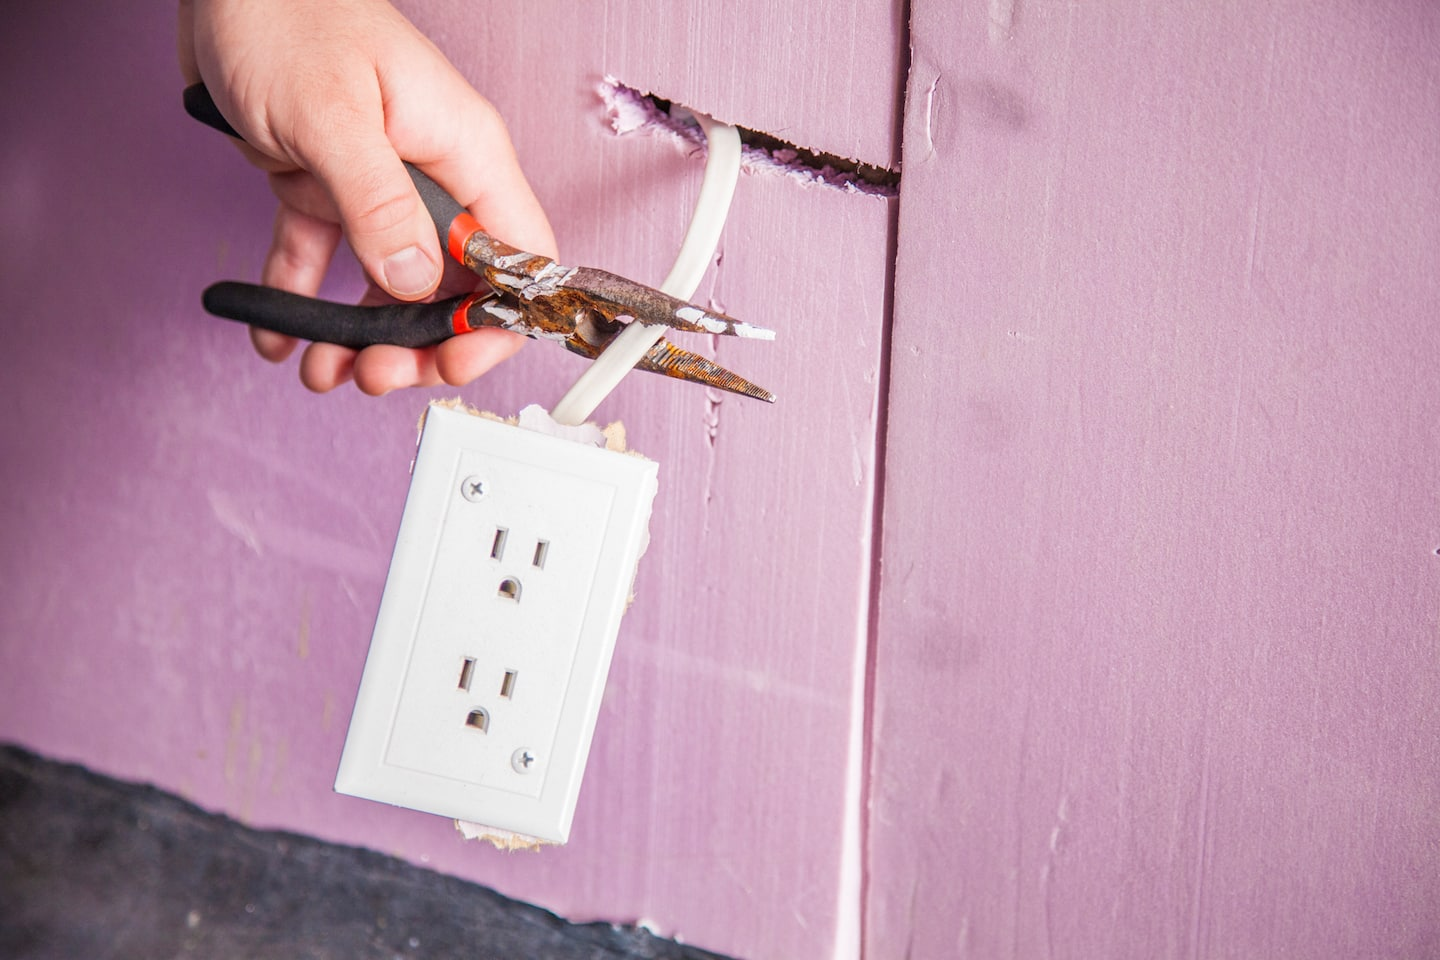 Electrical Advice Every Homeowner Should Know Angies List Outlet Installation Atlanta Install Outlets